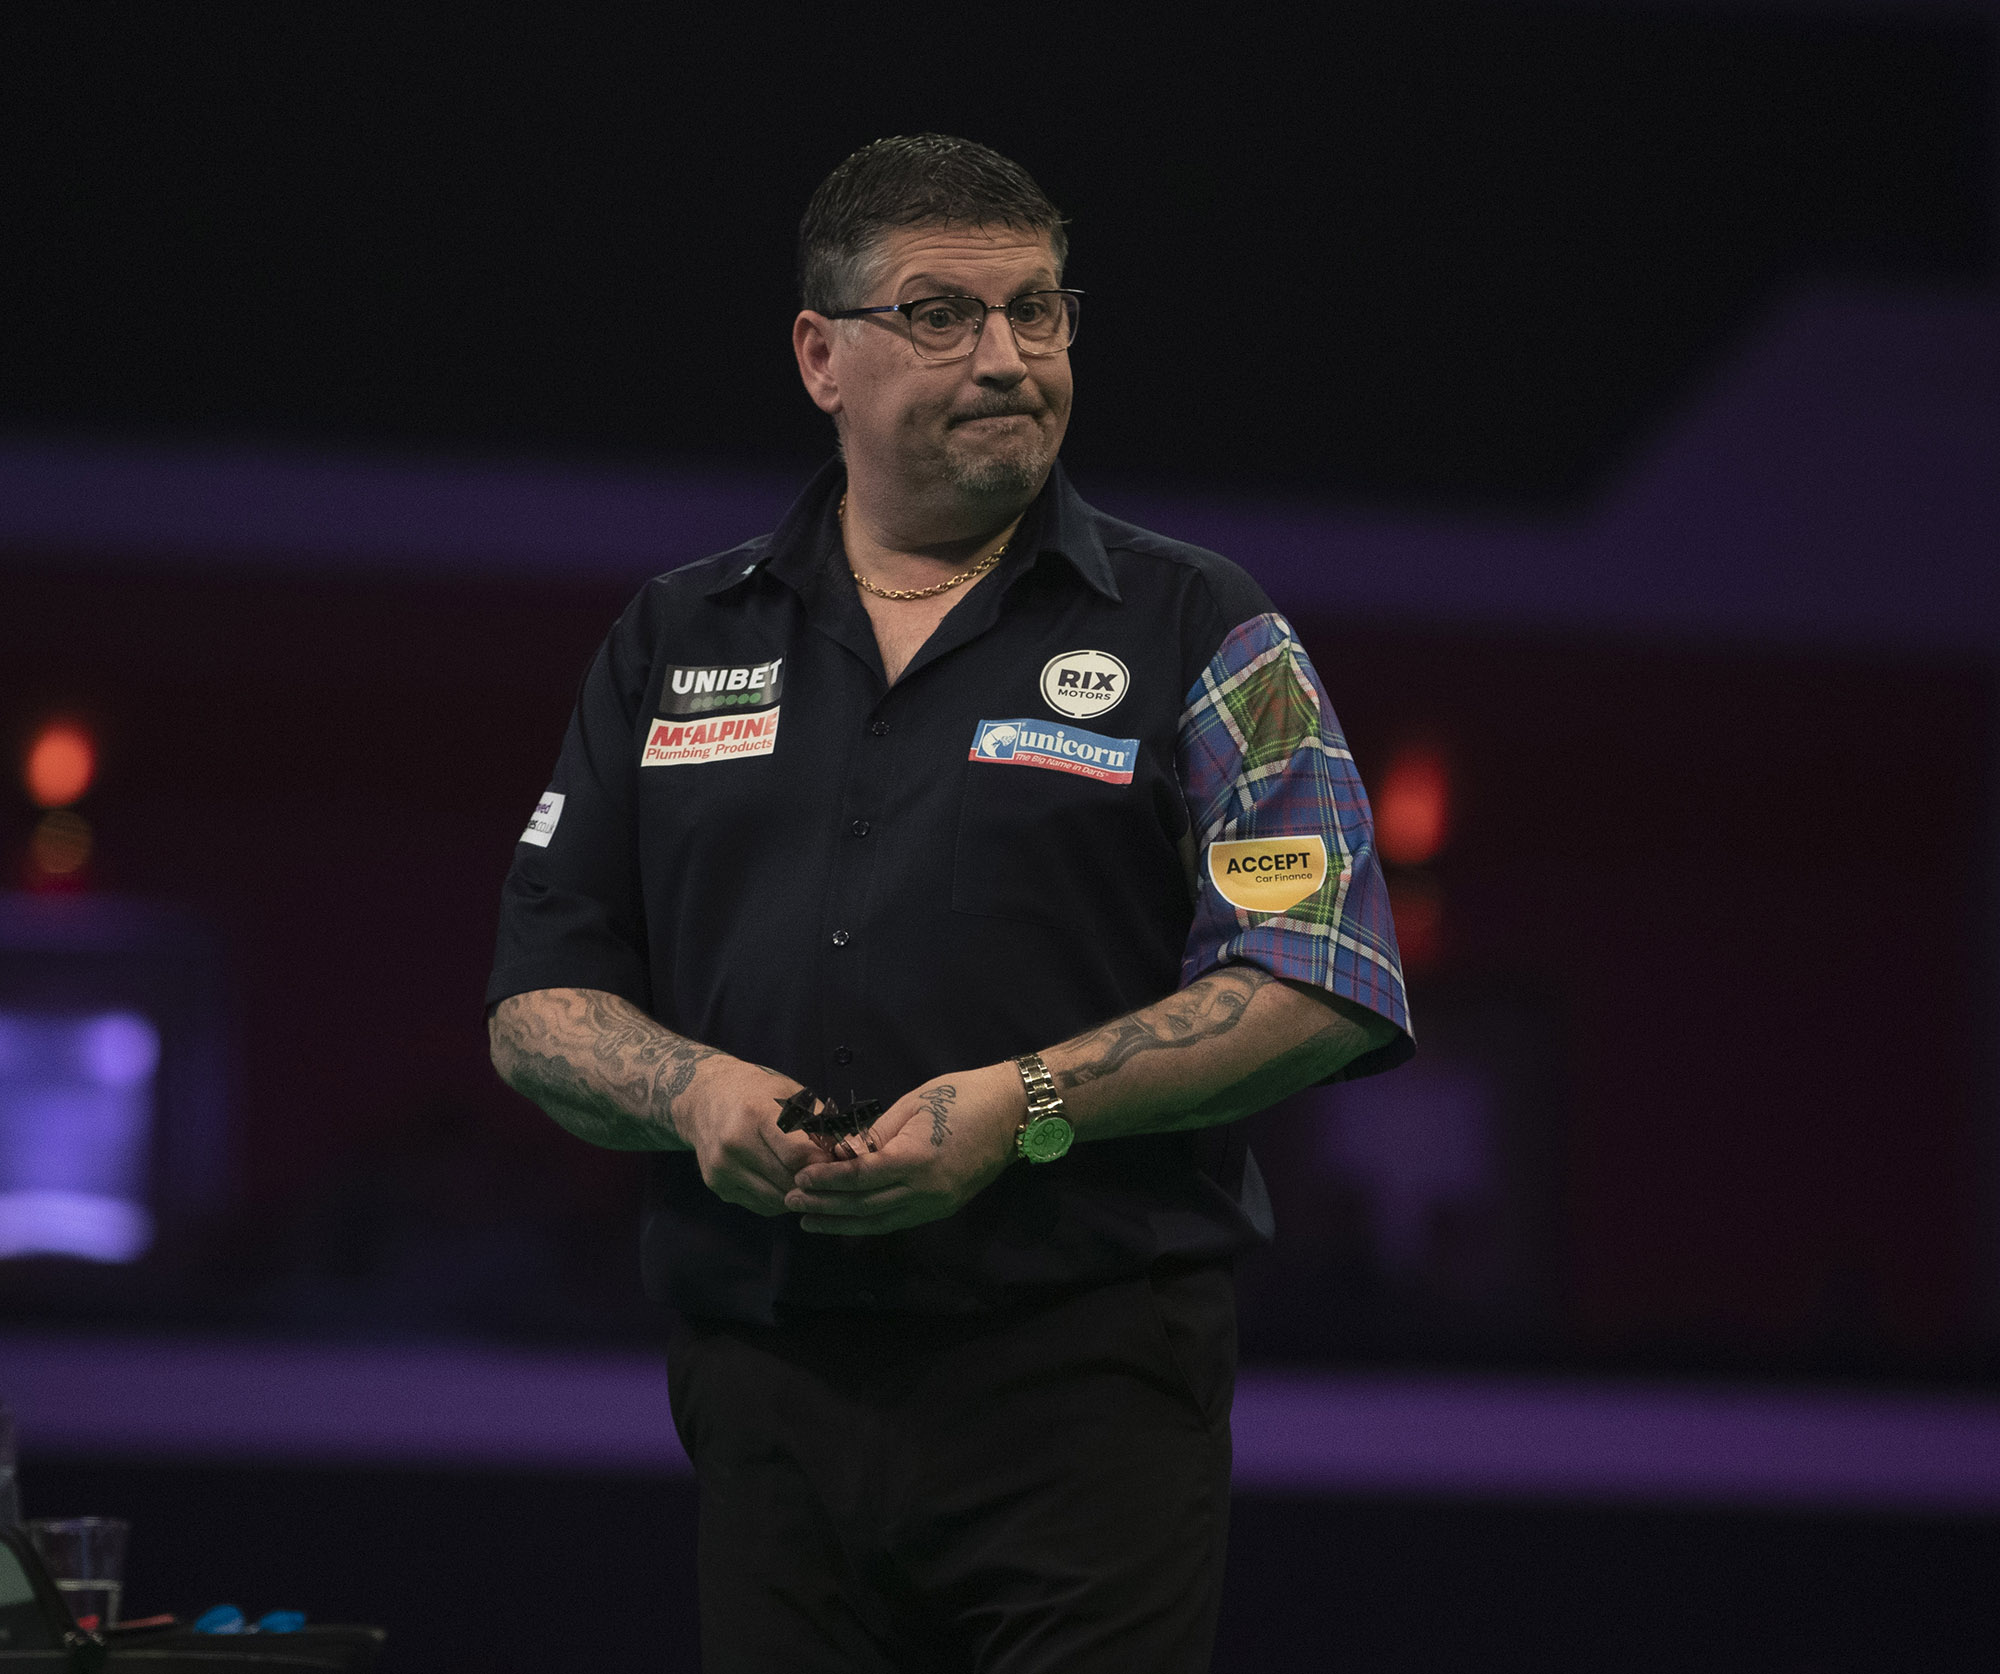 Gary Anderson expresses concerns around having to travel for the Autumn Series and is yet to decide if he will go.